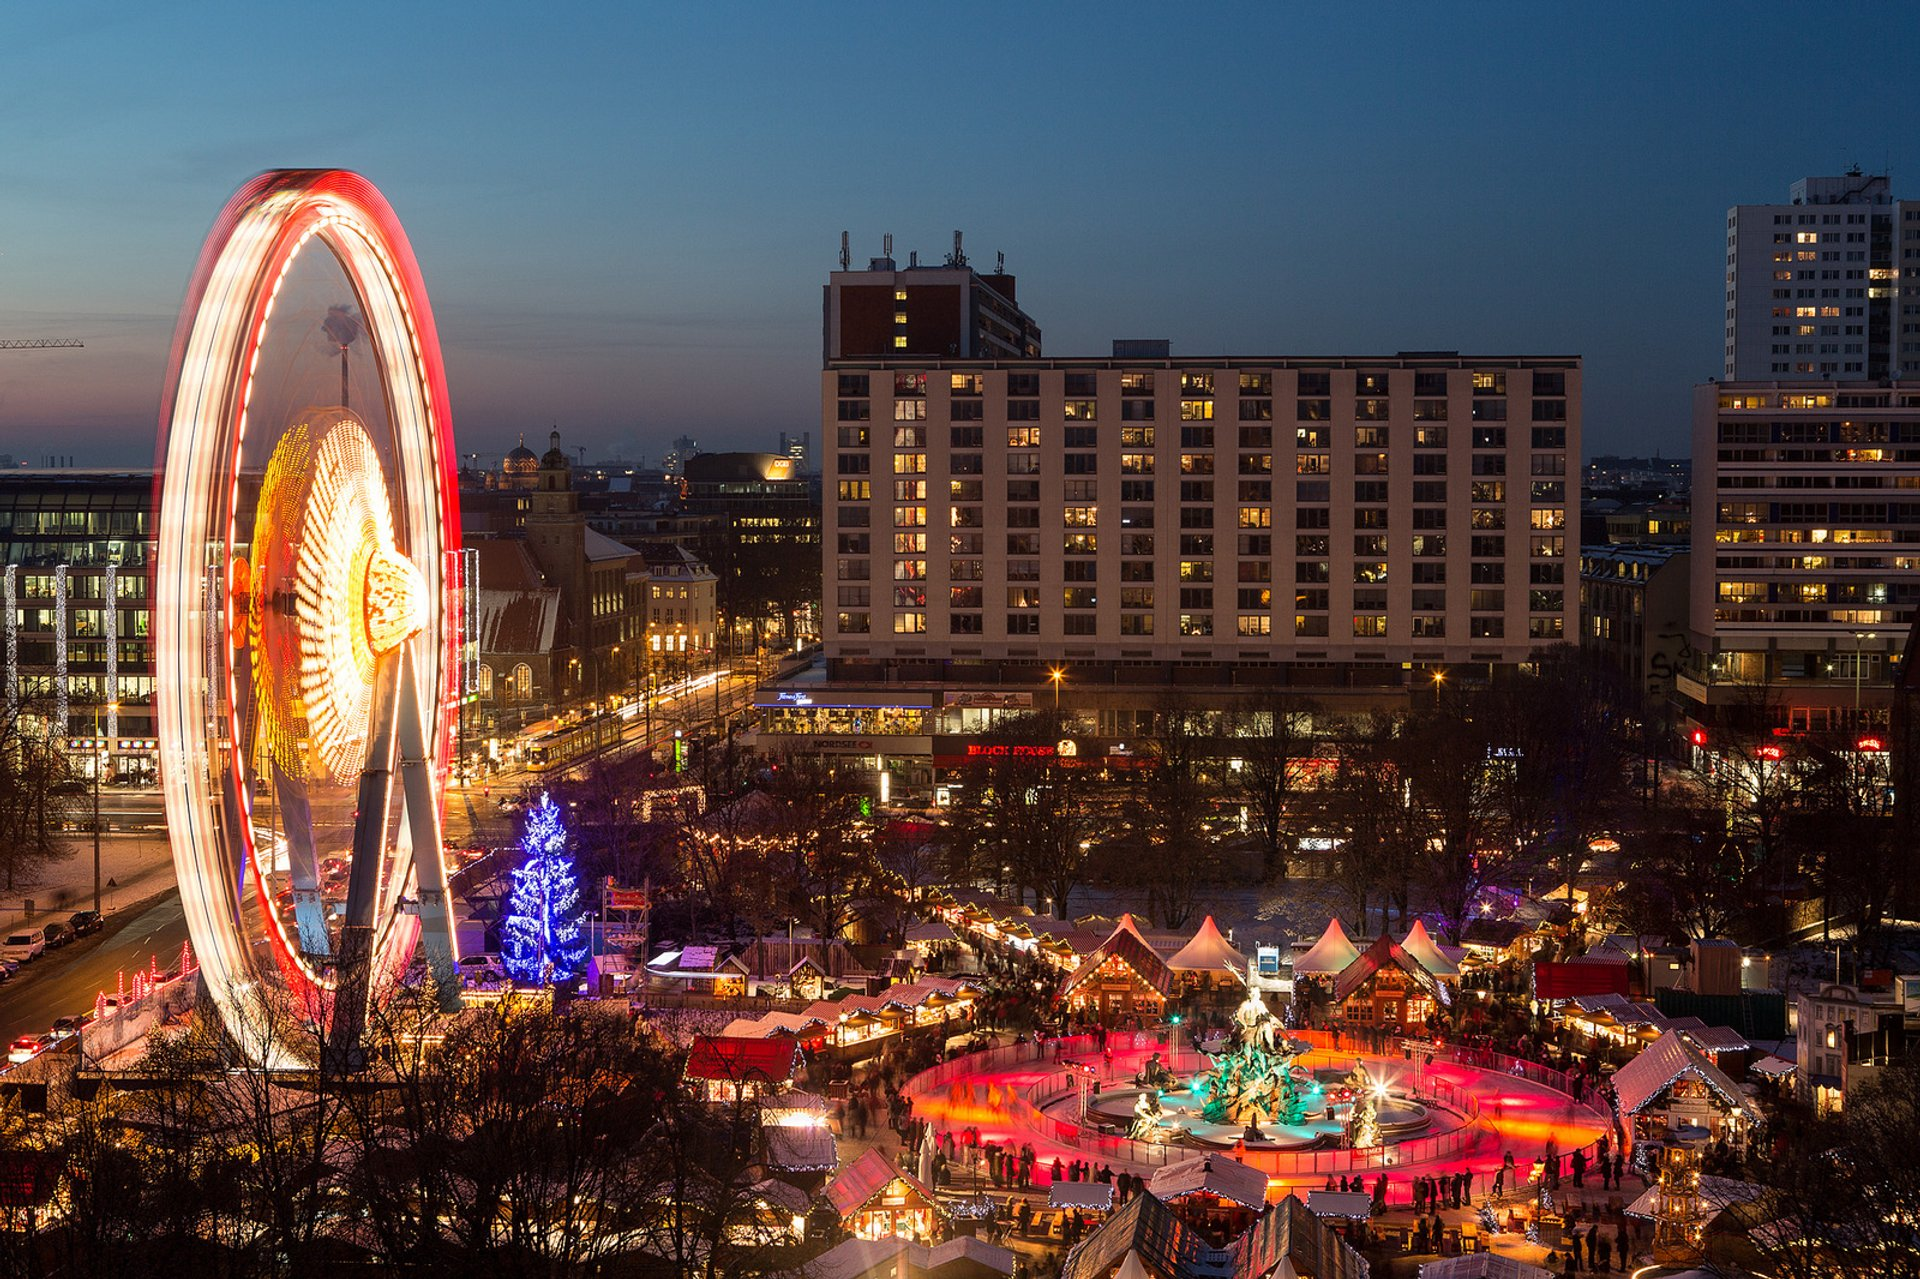 Christmas Market in front of Berlin City Hall 2019